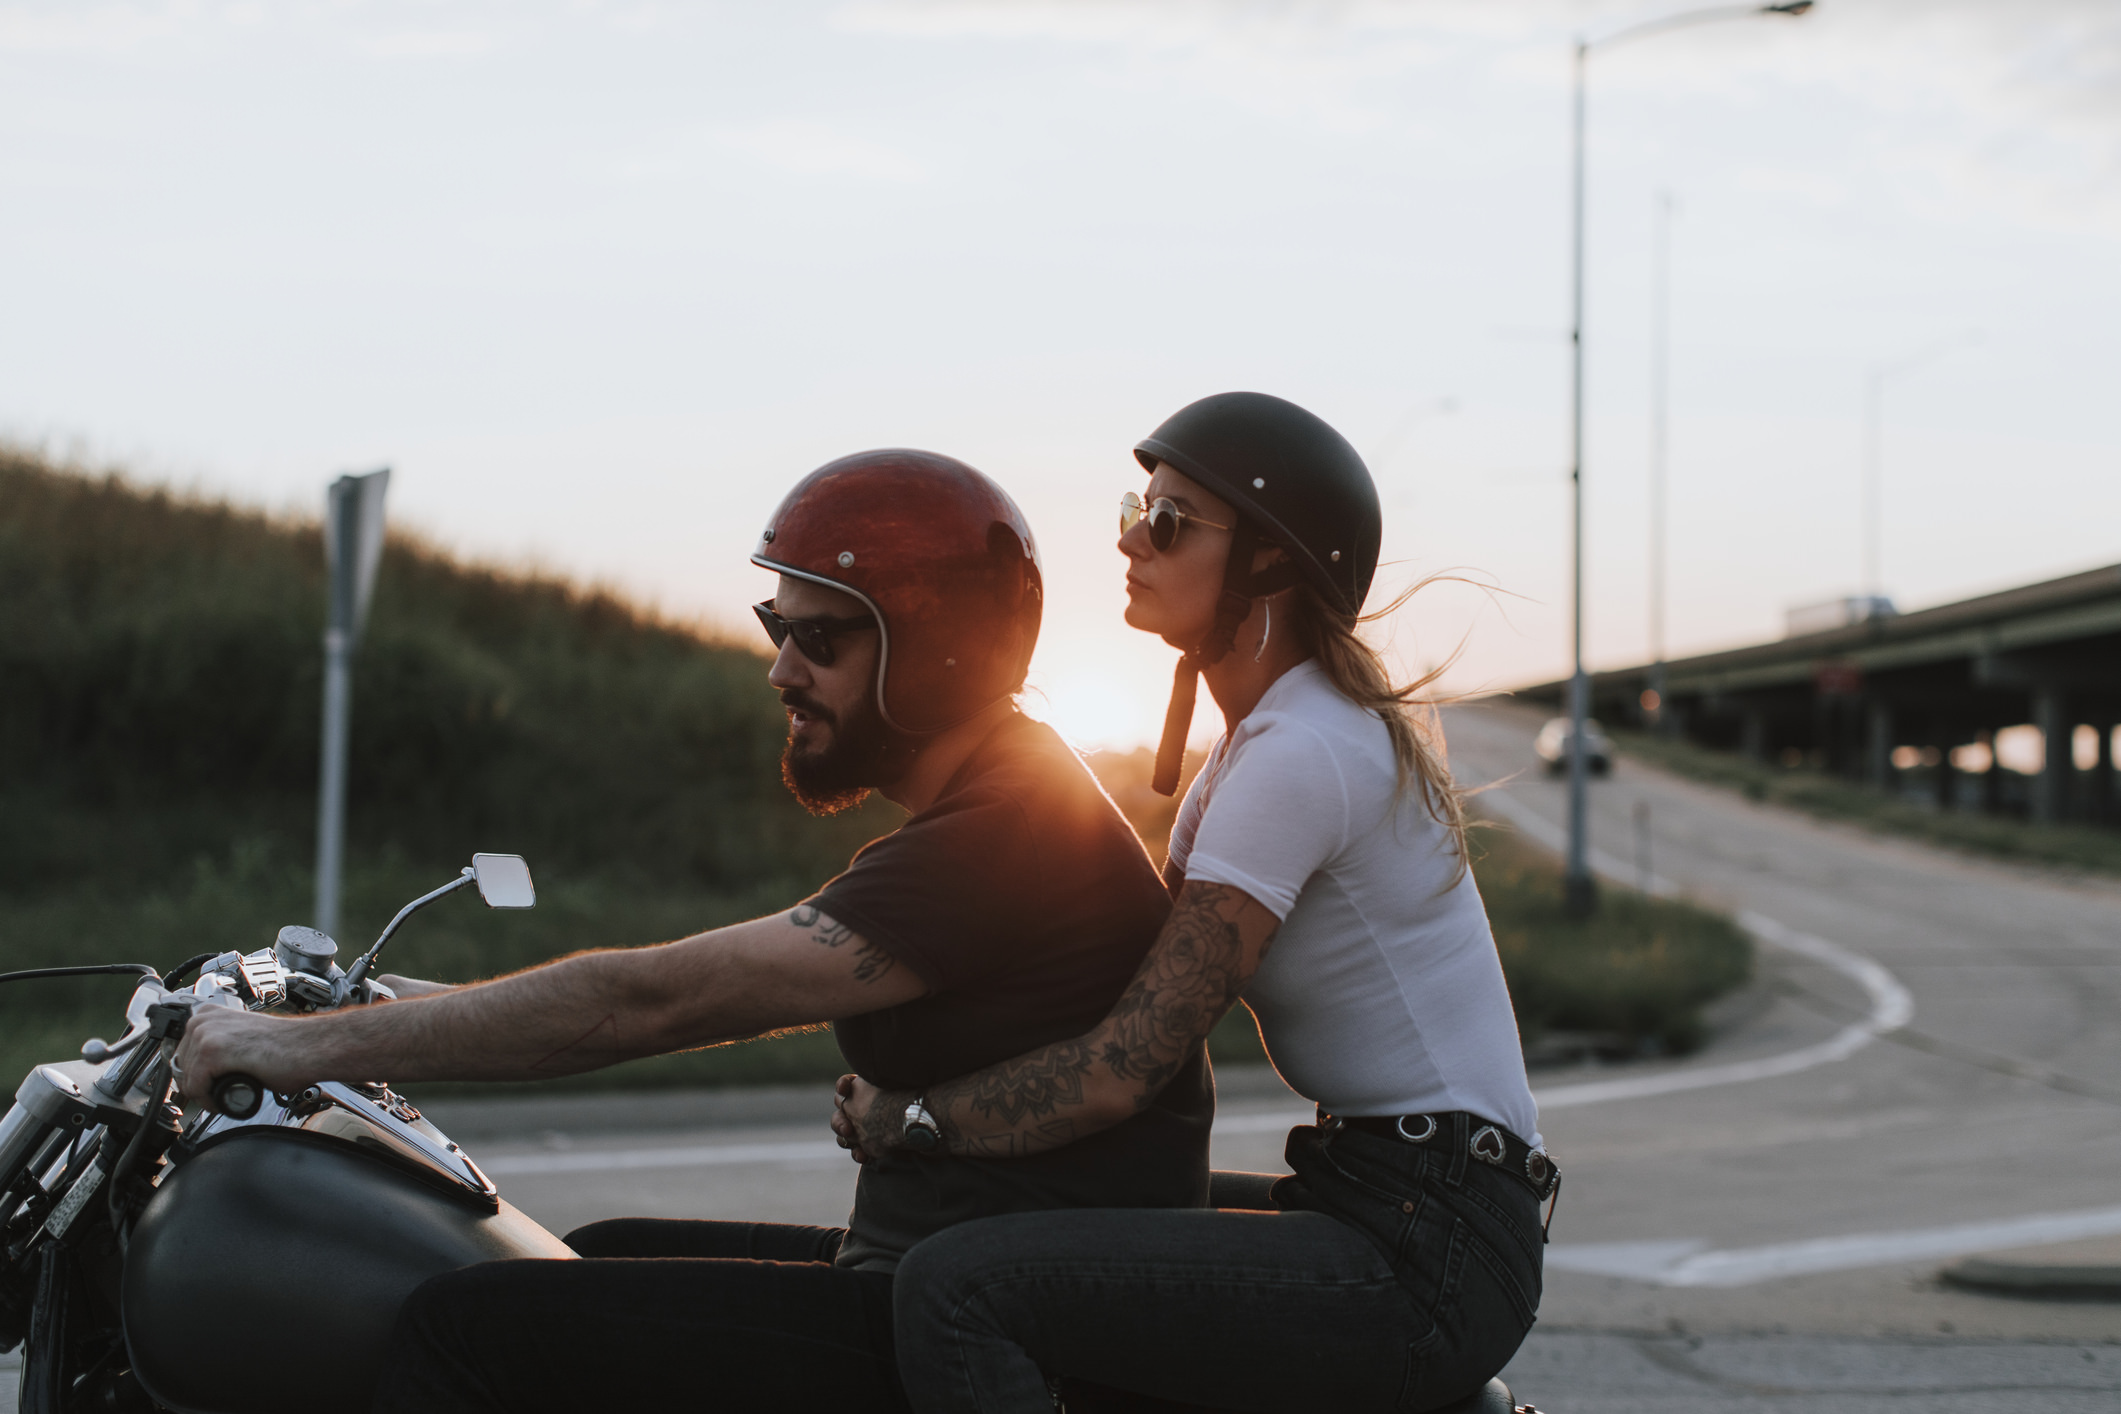 Unmarried Couples on Motorcycles: What Are Your Rights?